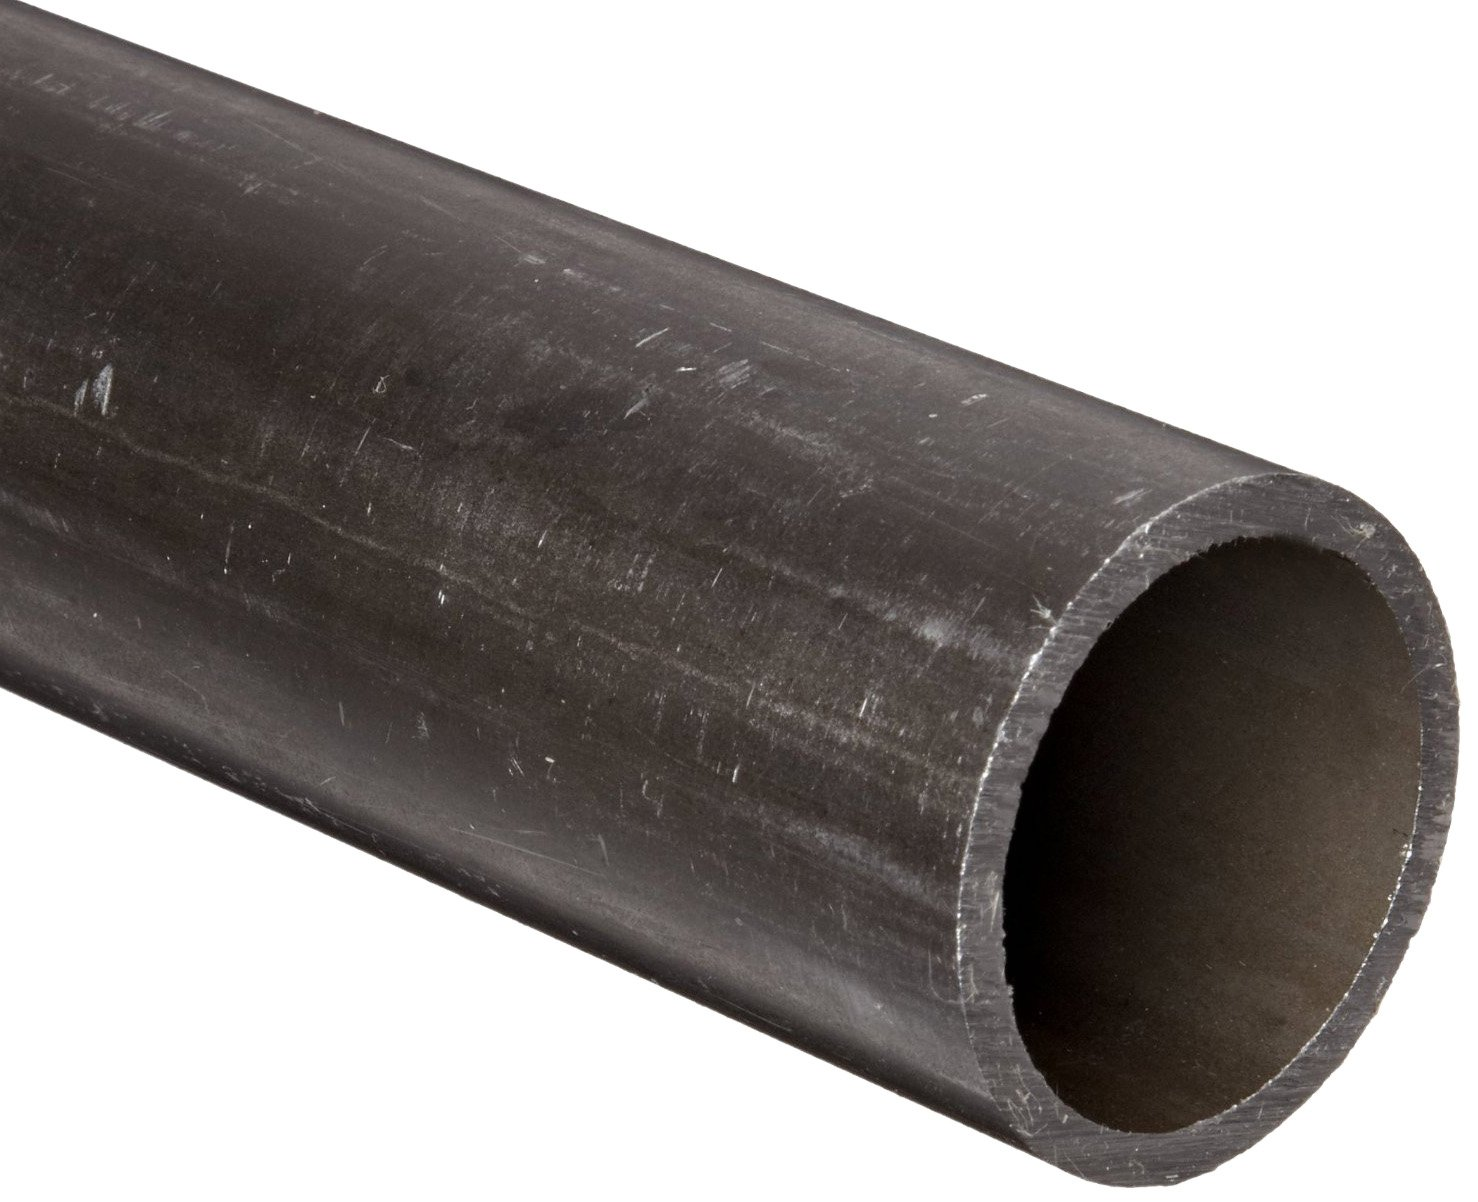 Cold Rolled Steel A513 Drawn Over Mandrel Round Tubing, ASTM A513, 3'' OD, 2.625'' ID, 0.1875'' Wall, 72'' Length